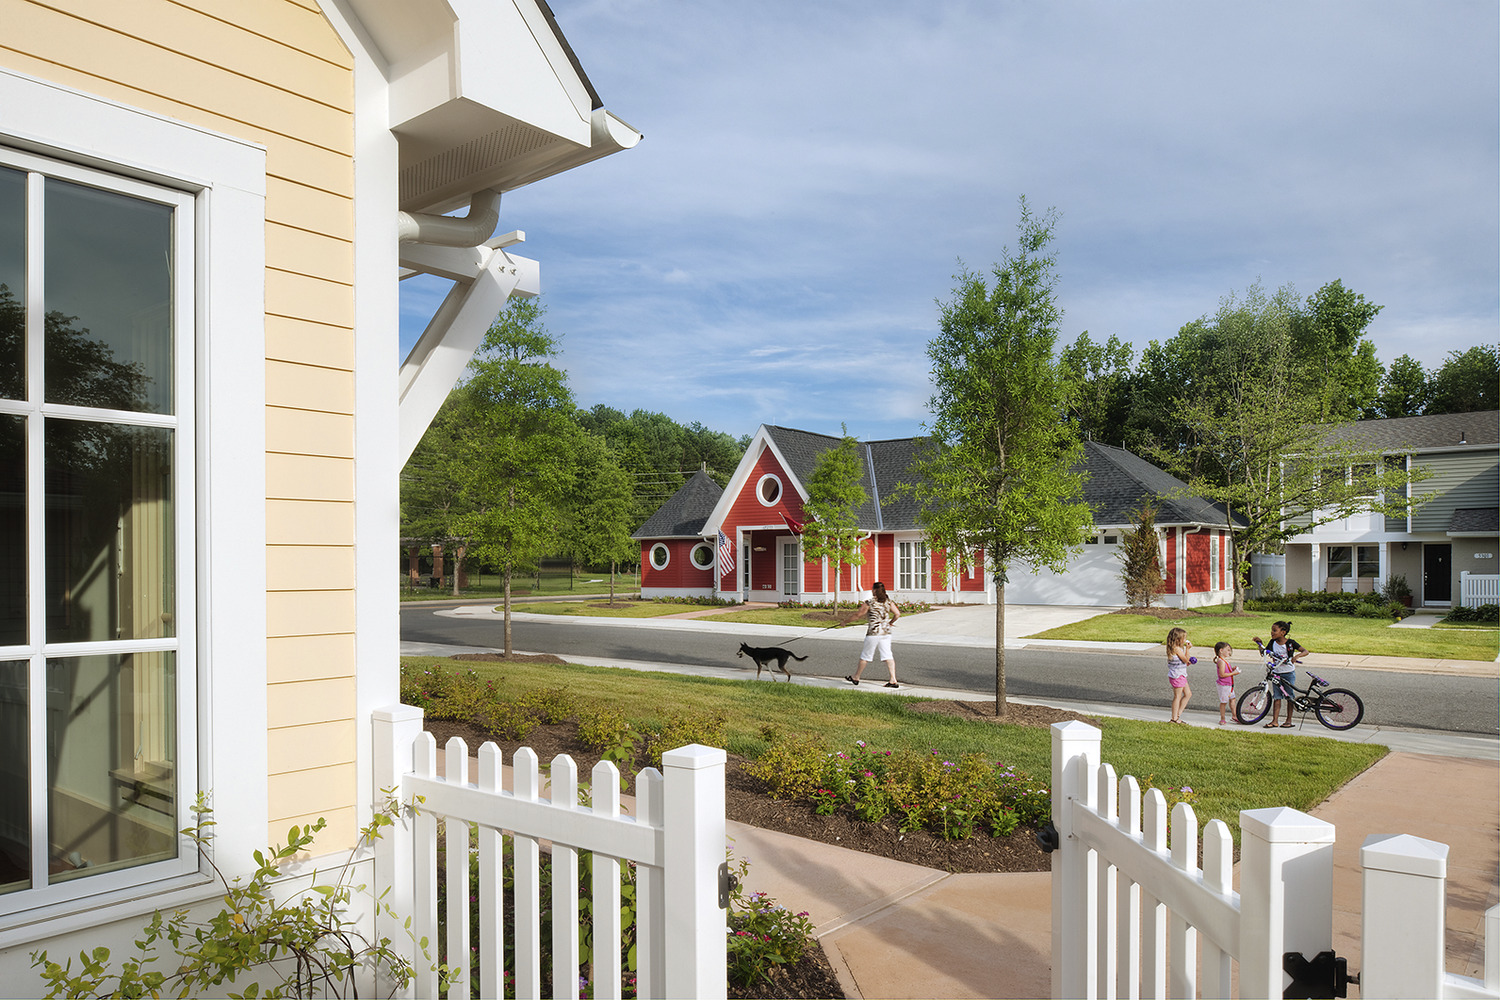 CBG builds Wounded Warrior Home Project, a Two Innovative Prototype Homes for Wounded Warriors at Fort Belvoir in Fort Belvoir, VA - Image #2